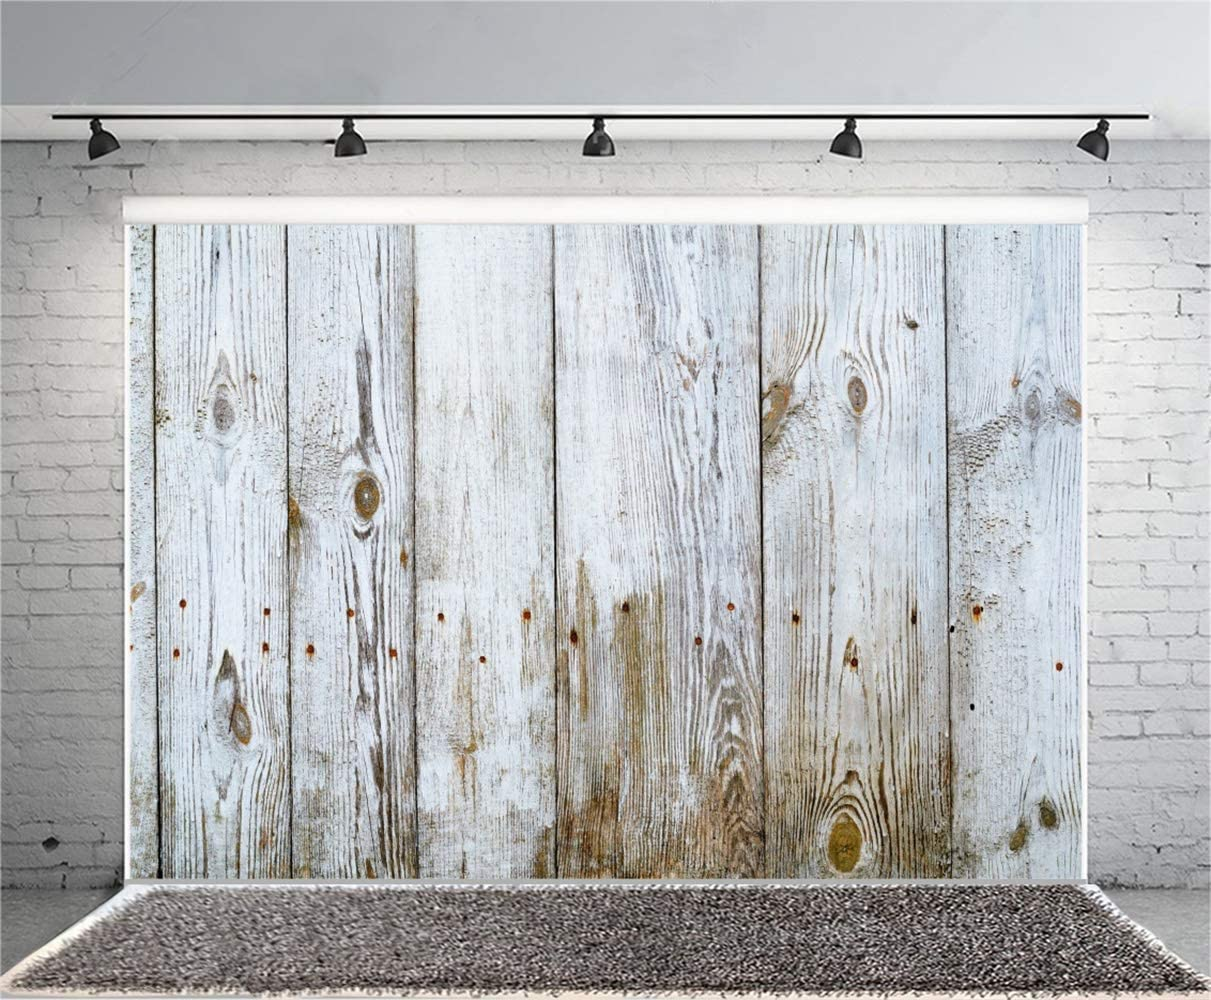 GoEoo 10x7ft Grunge Faded White Wood Texture Board Backdrop Vinyl Rustic Old Vertical Striped Wood Plank Background Child Adult Artistic Portrait Kid Clothes Dolls Toys Shoot Wallpaper Studio